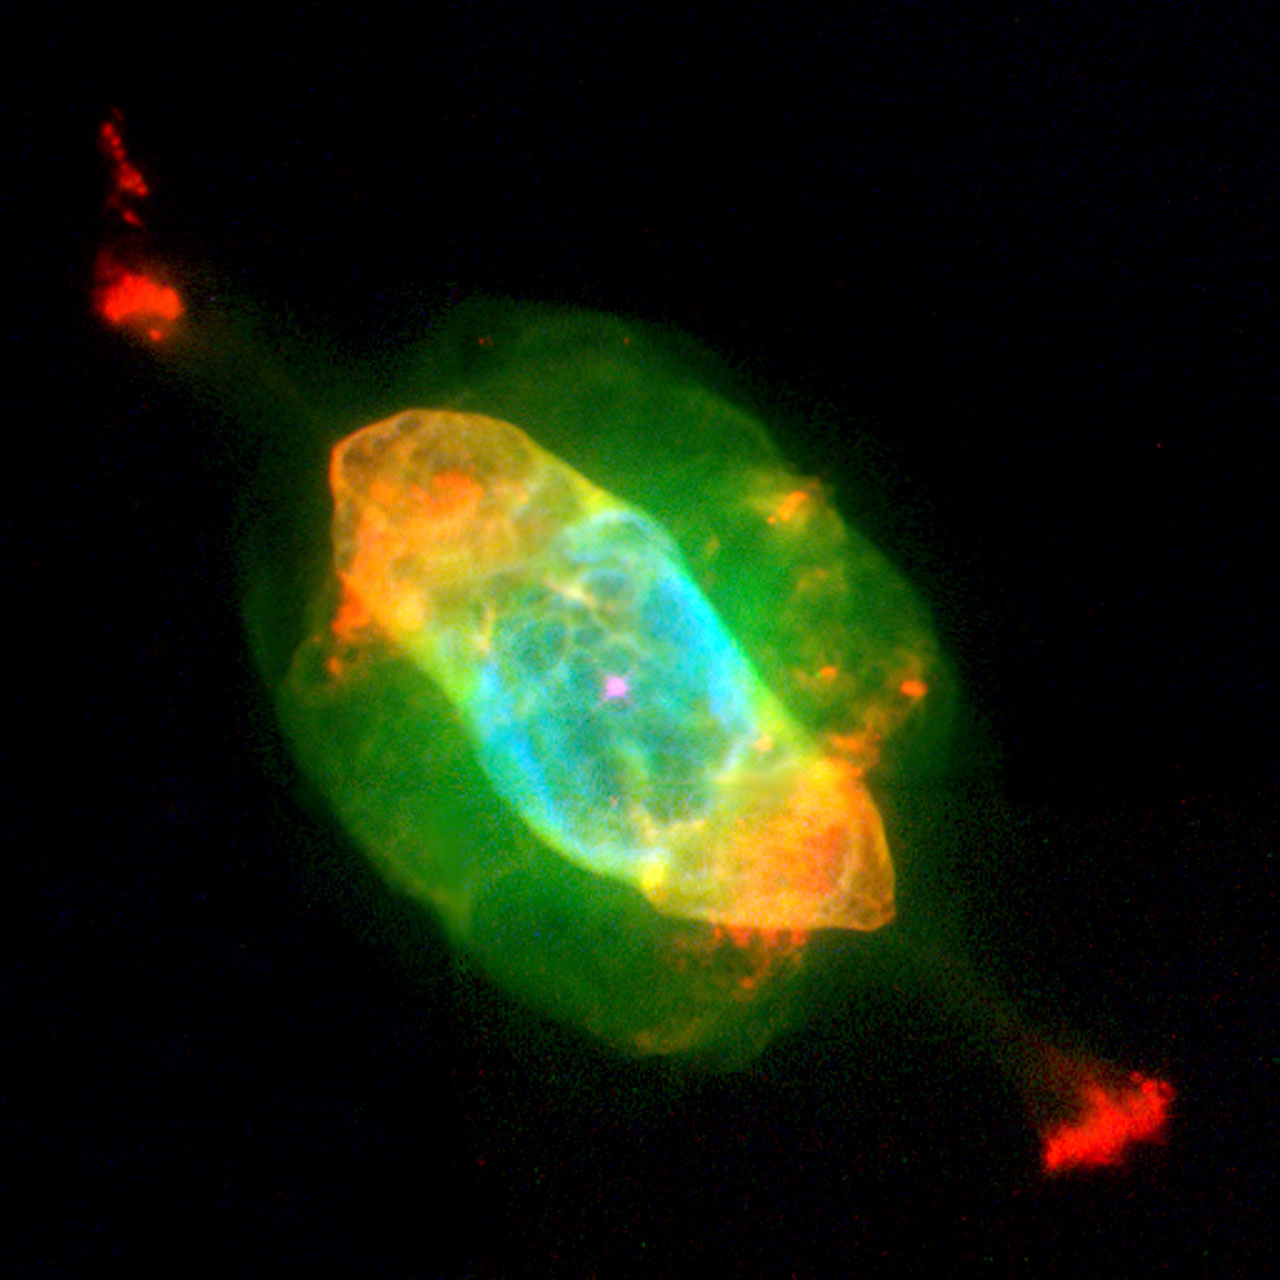 Hubble's Planetary Nebula Gallery. A View of NGC 7009